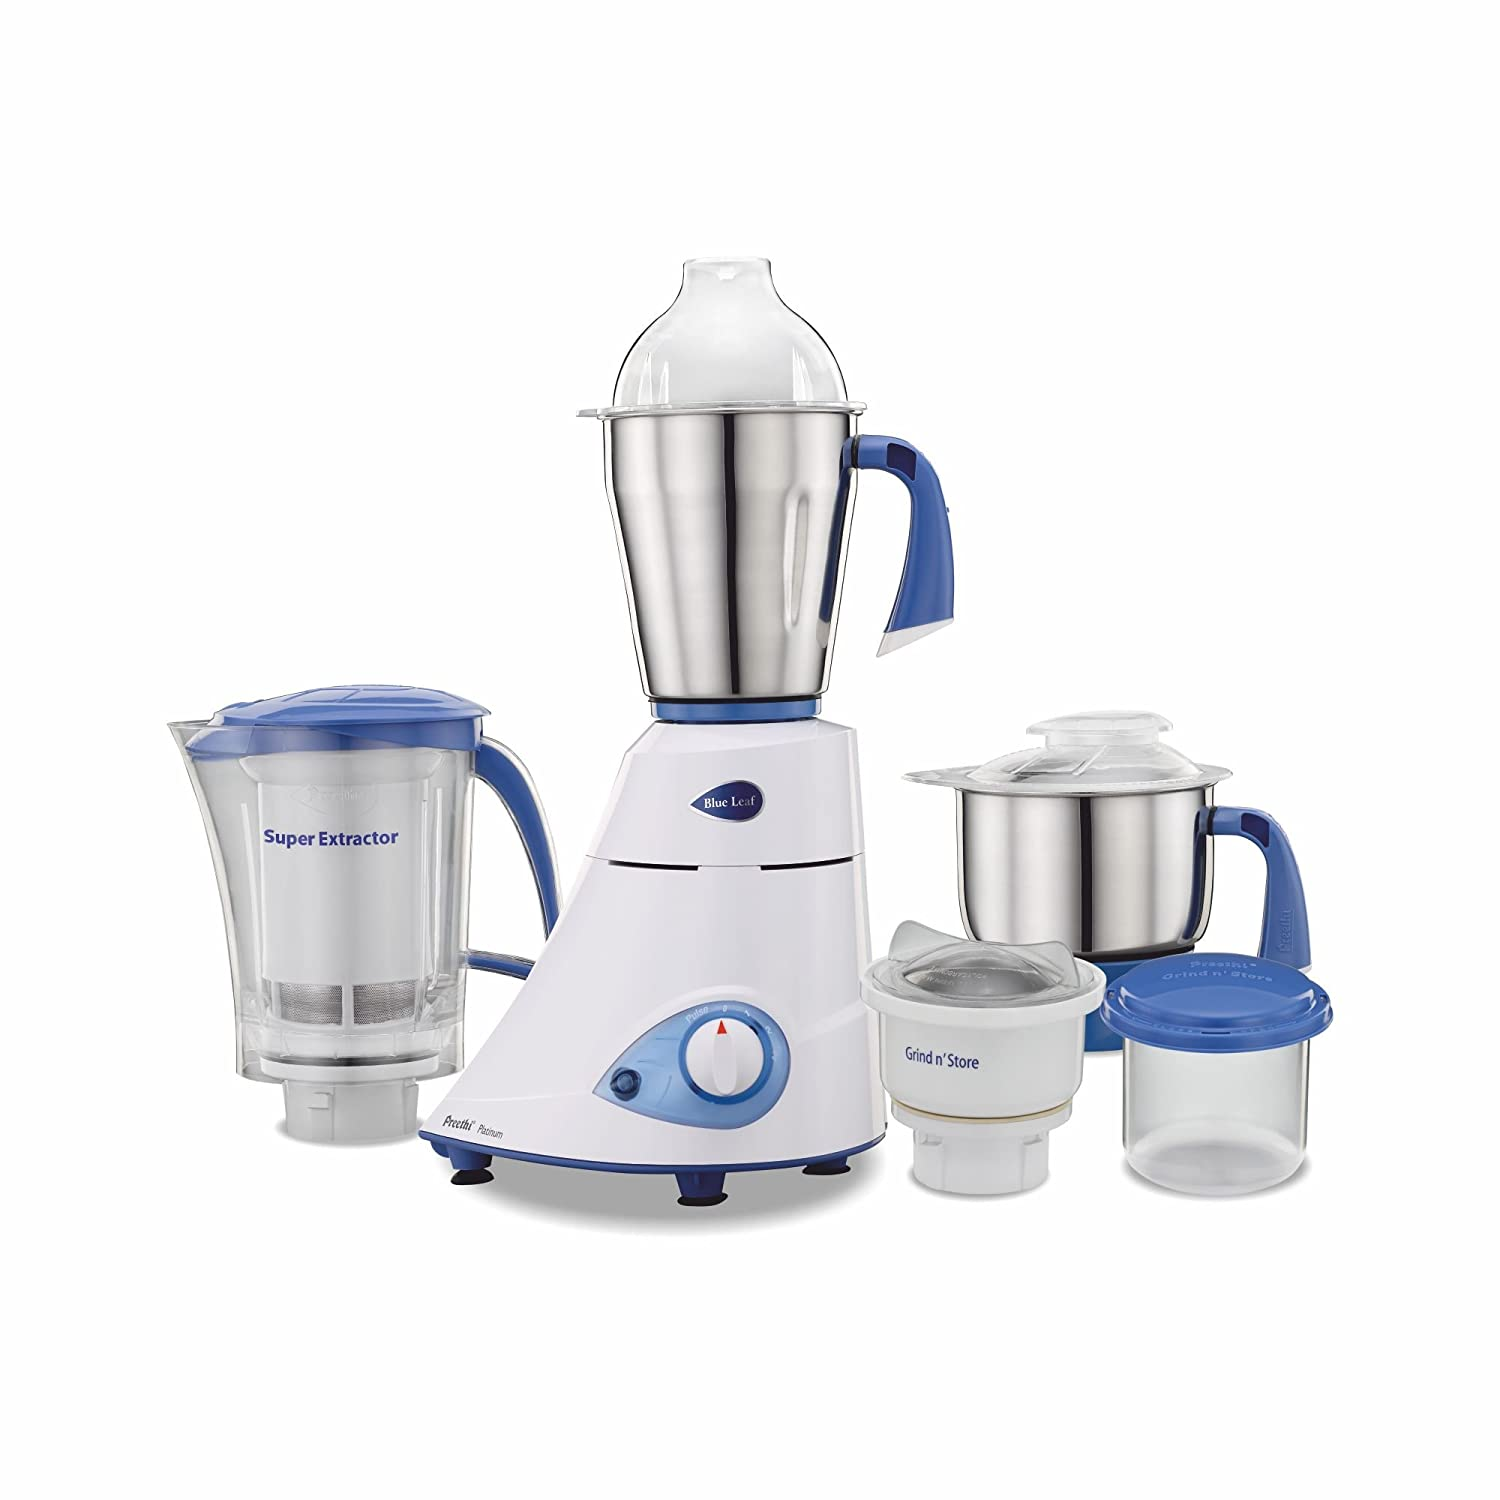 Uncategorized Saravana Stores Kitchen Appliances buy preethi blue leaf platinum mg 139 750 watt mixer grinder online at low prices in india amazon in